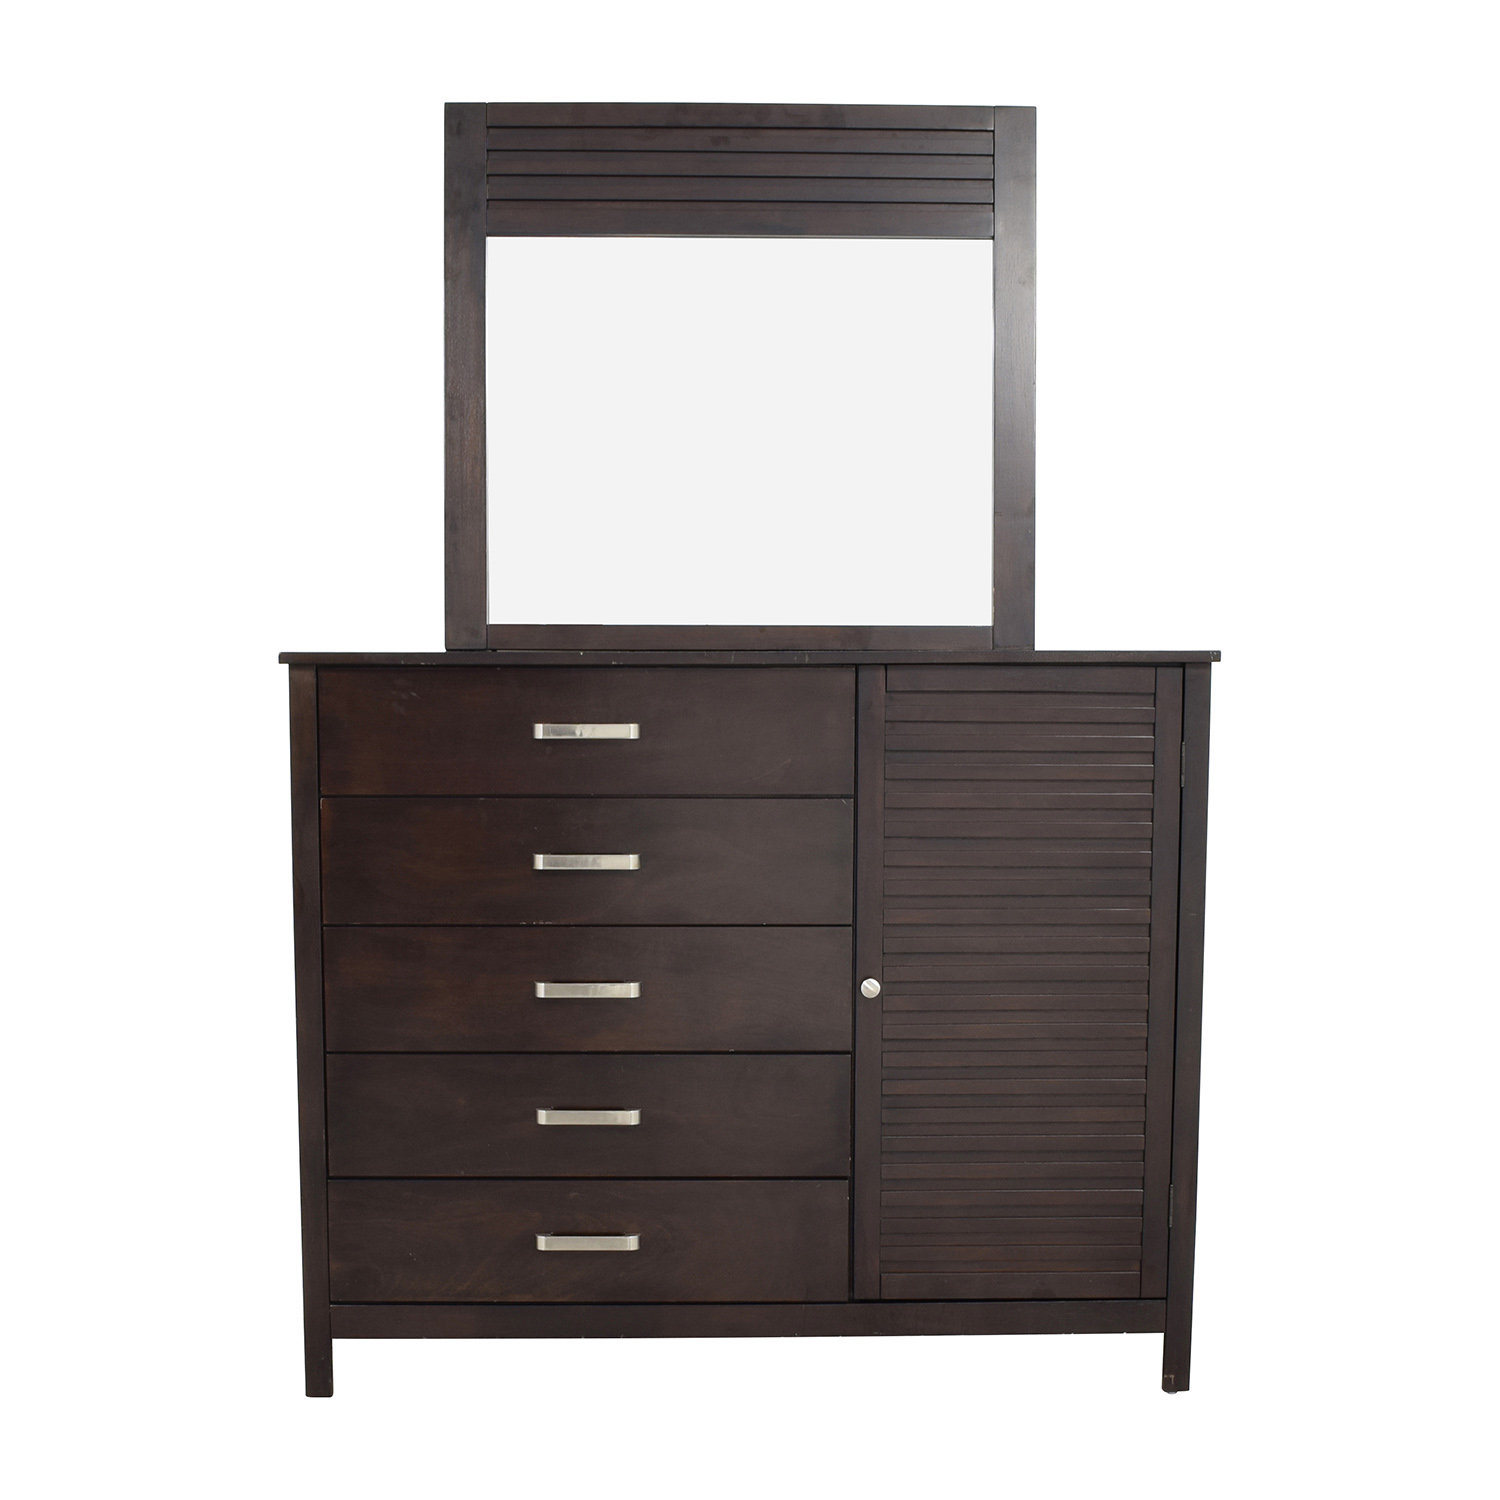 shop Rooms to Go Espresso Grove Five-Drawer Dresser with Mirror Rooms To Go